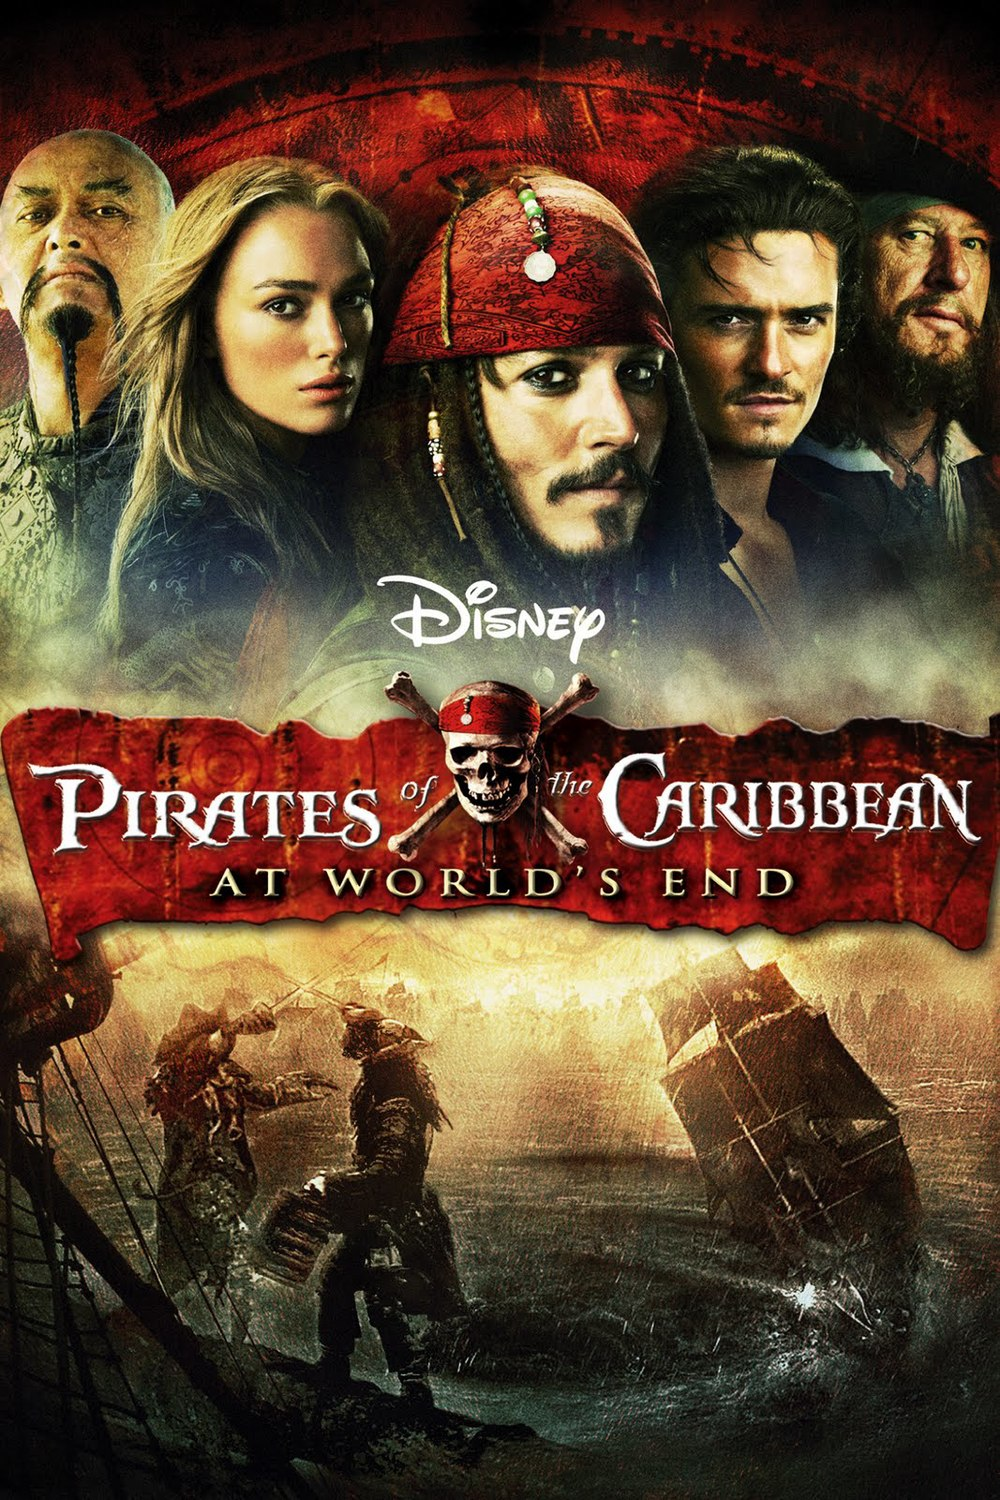 Pirates-of-the-Caribbean-At-Worlds-End-Official-Movie-Poster.jpg